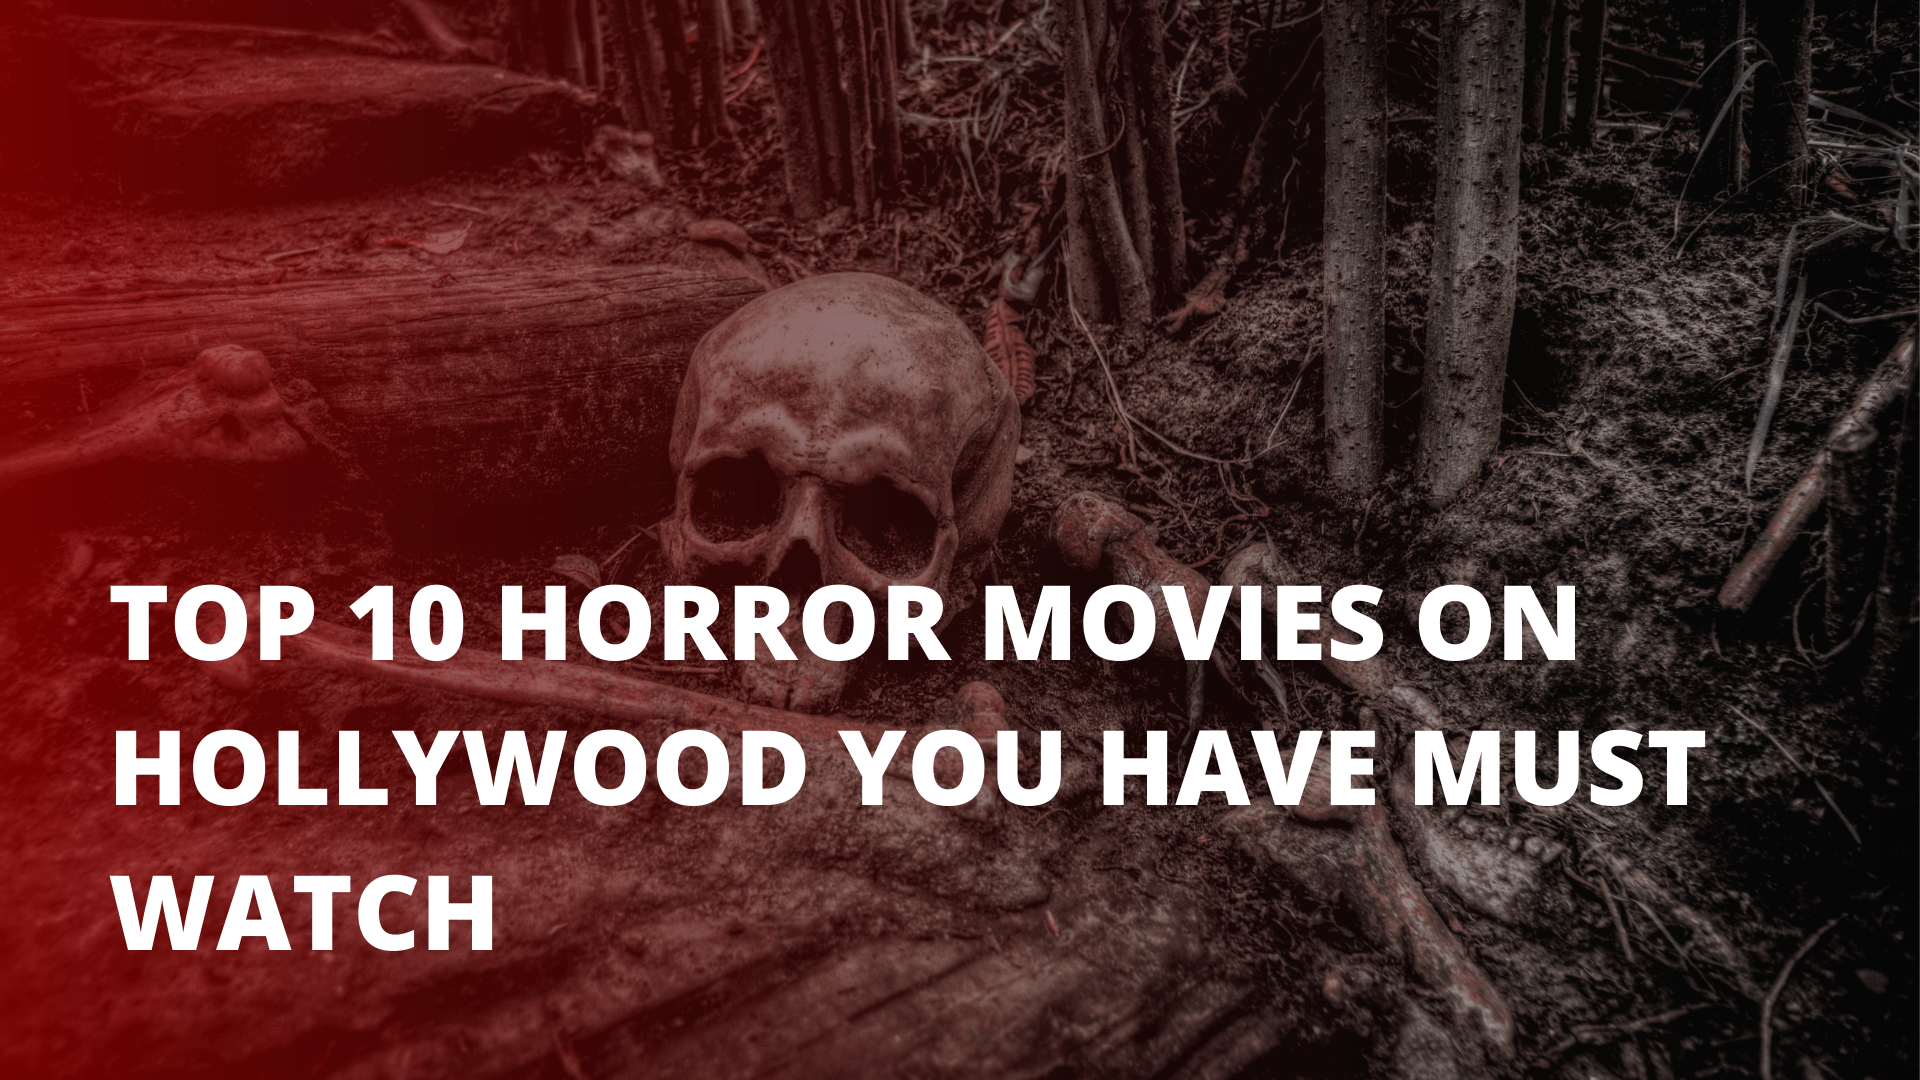 Top 10 horror movies on Hollywood you have must watch